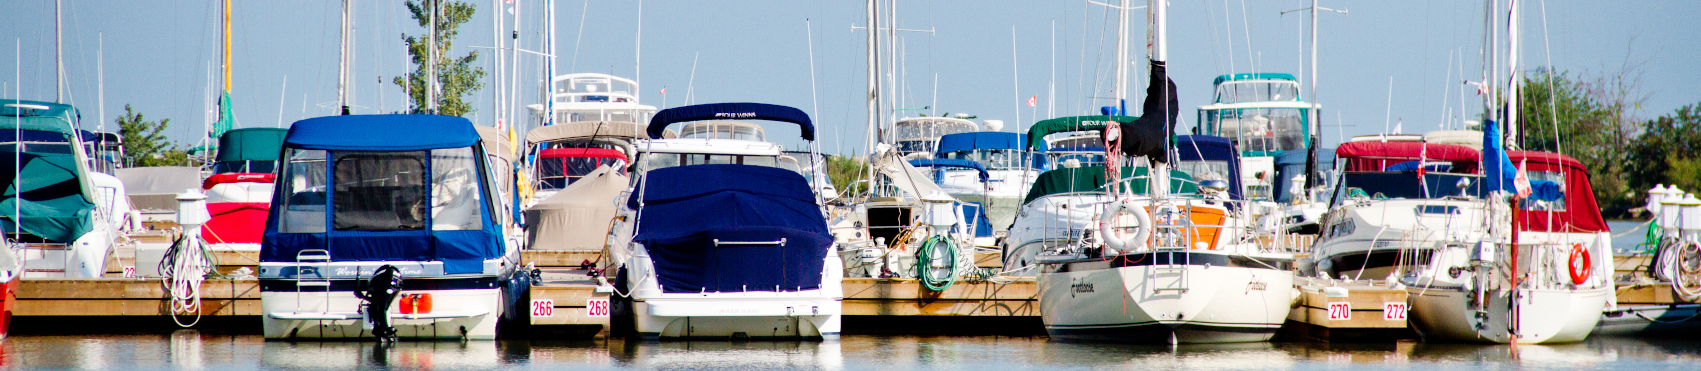 boats docked at the Belle River Marina